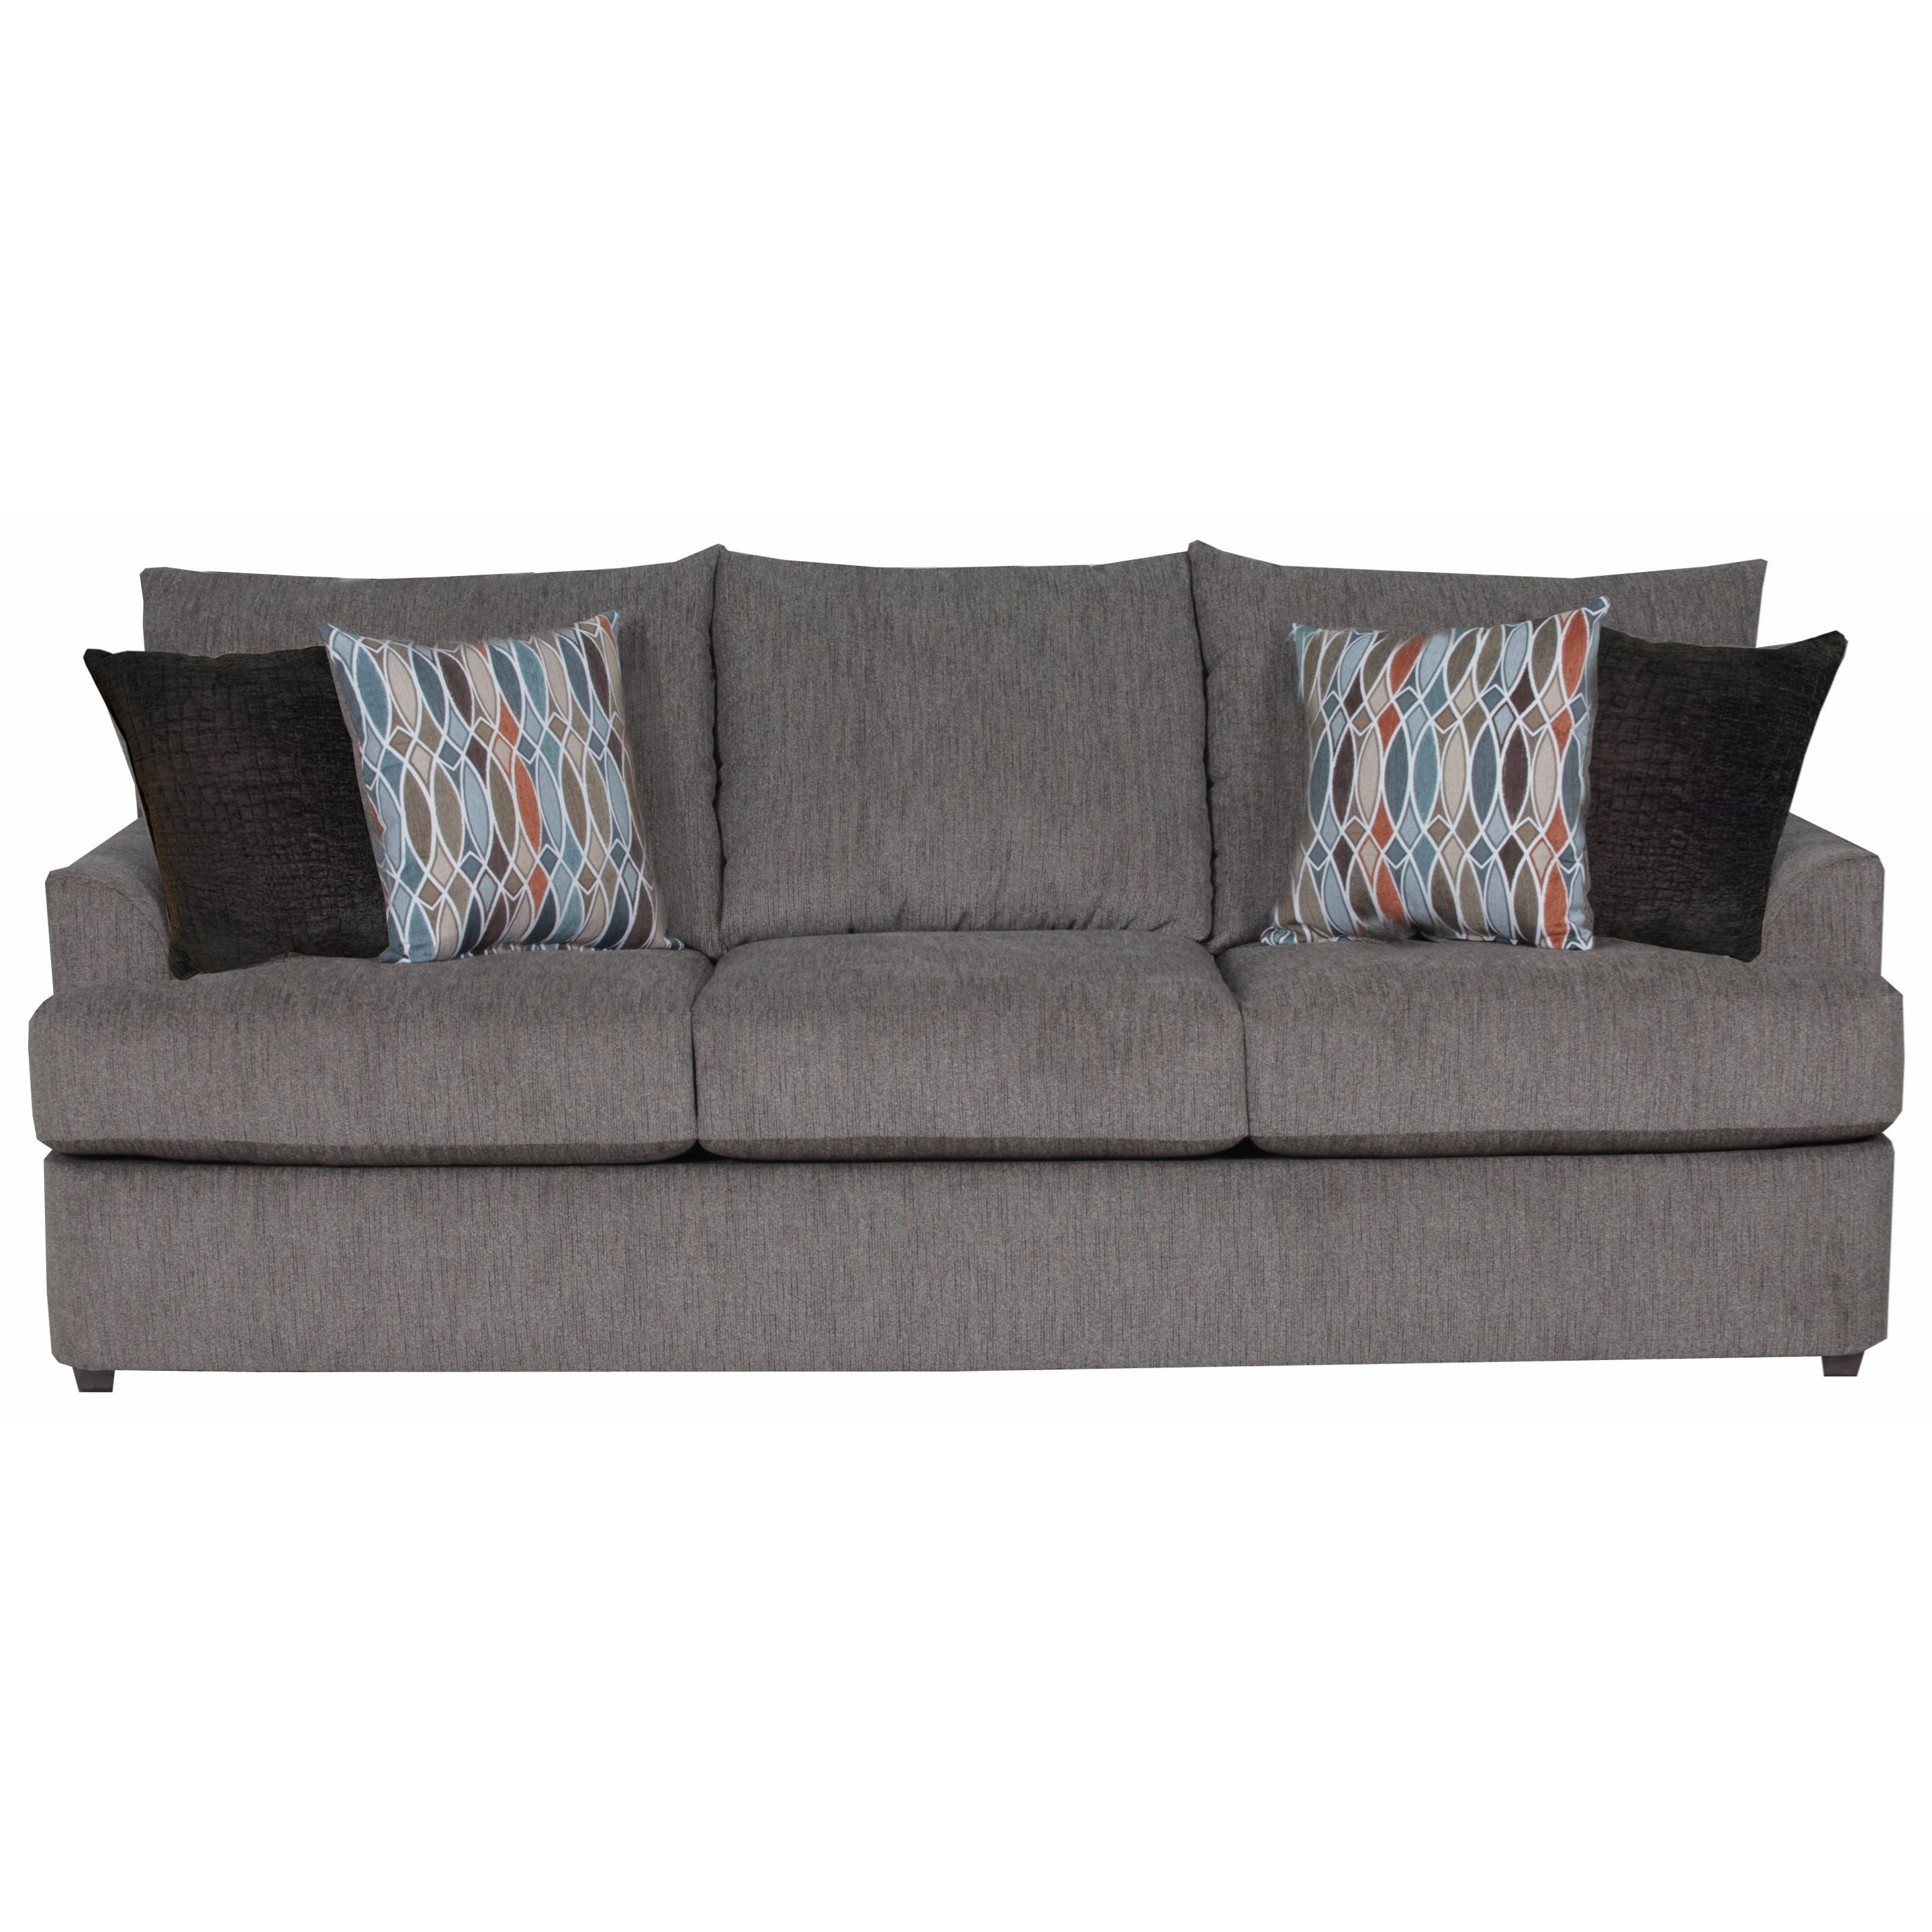 8540BR Casual Sofa by United Furniture Industries at Dream Home Interiors